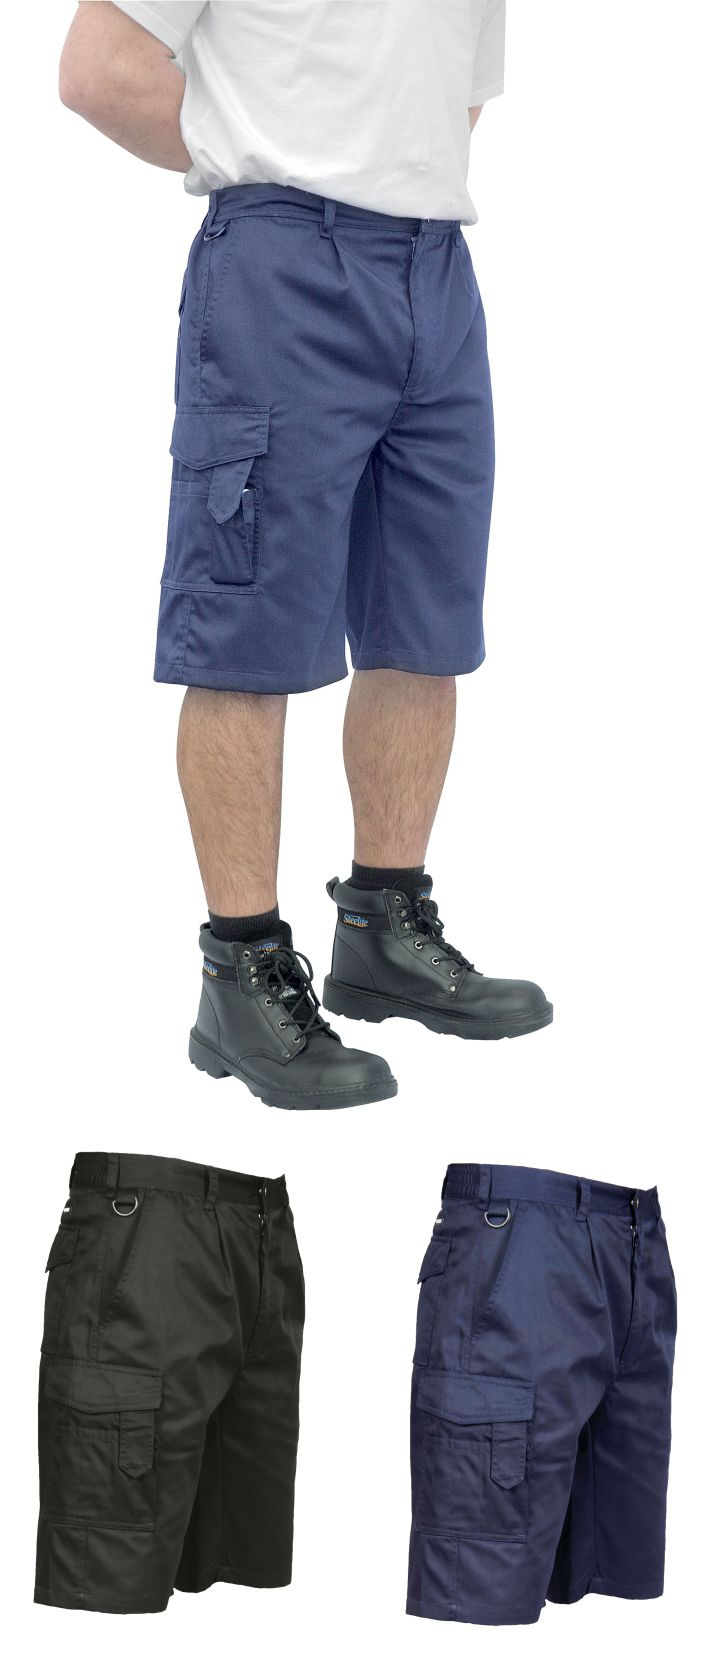 S790 Portwest Combat shorts